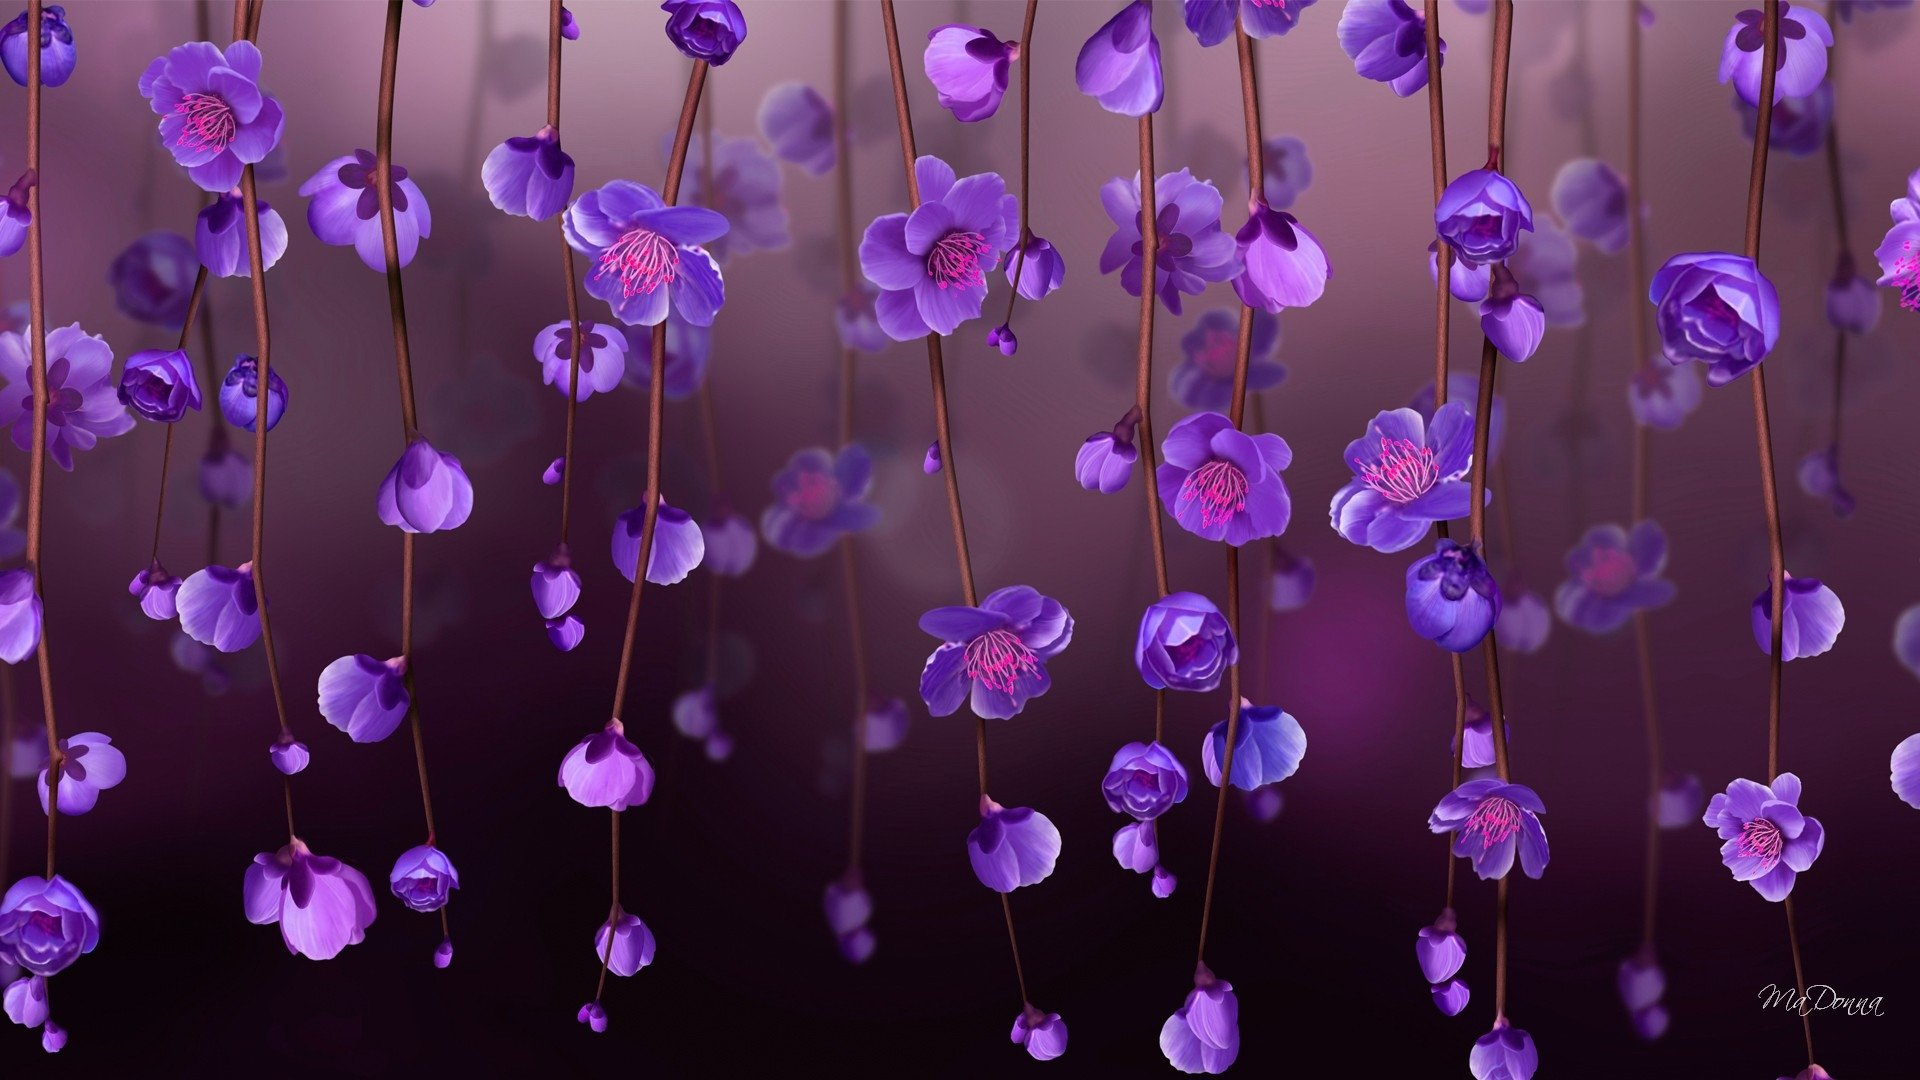 1406 Purple Flower HD Wallpapers | Background Images - Wallpaper Abyss